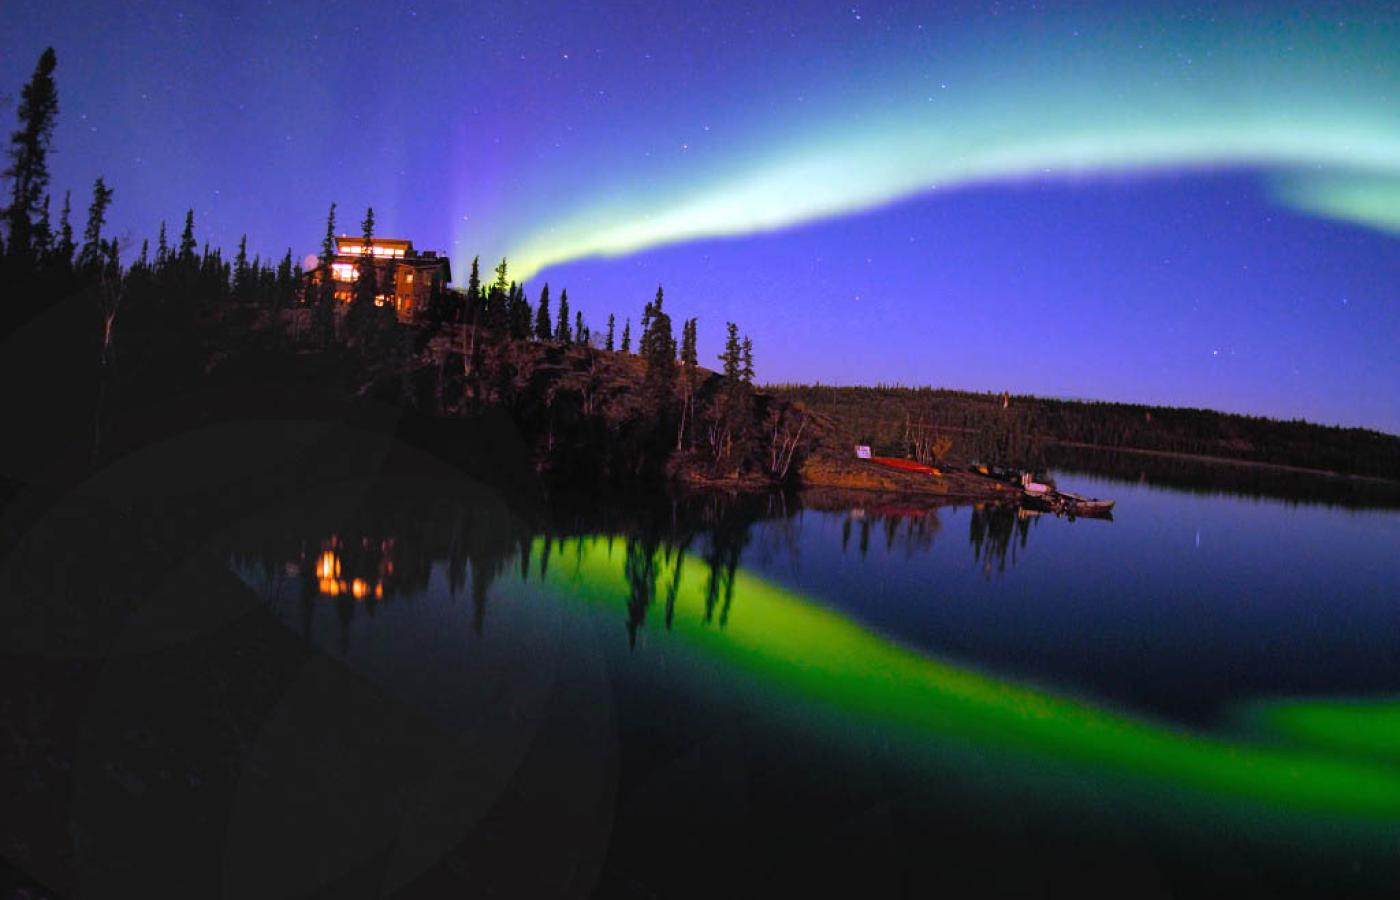 The Northern Lights on display over Blachford Lake Lodge in the Northwest Territories.